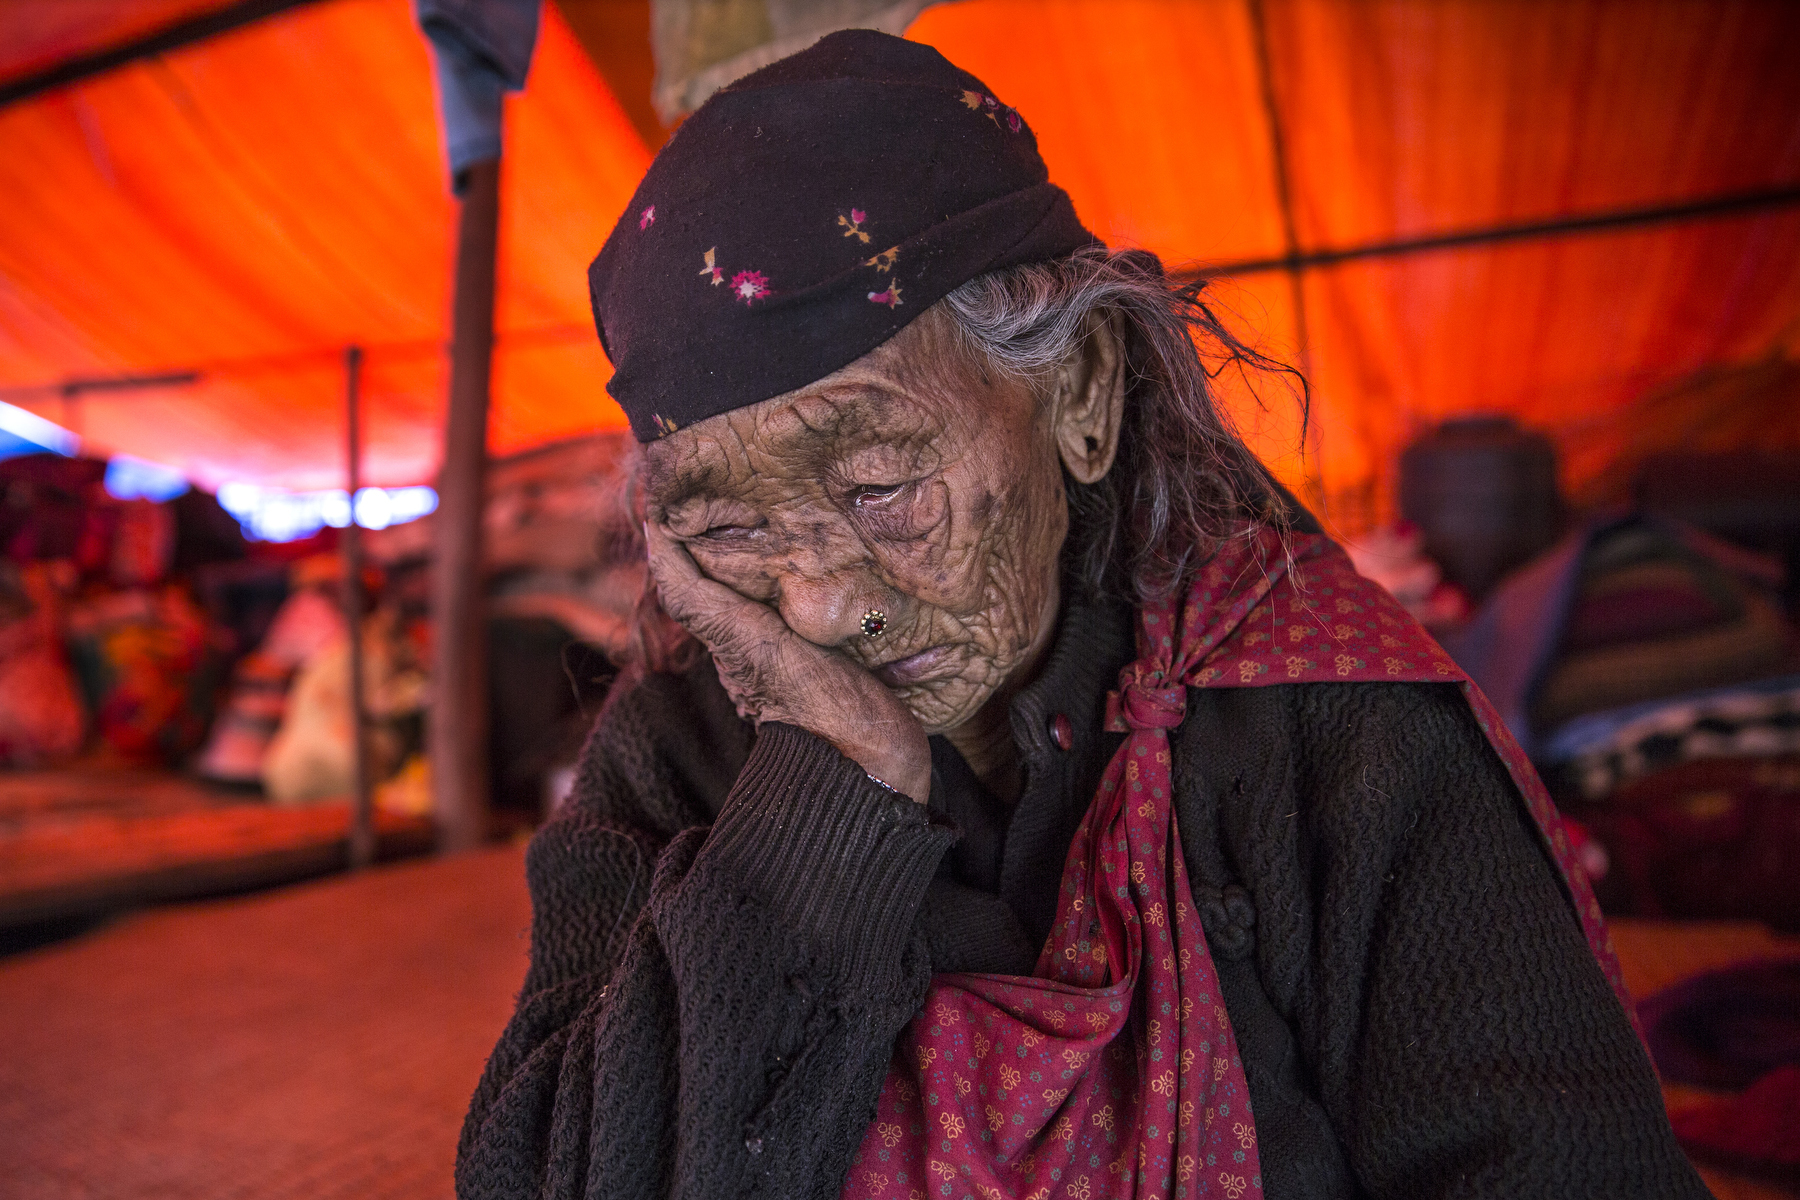 BARPAK, NEPAL -MAY 1, 2015:. 99 year old Kalimaya Gurung rests under a tarp as her family clears debris in their homes. She refuses to leave her village, she was born in Barpak and chooses to die there. In Barpak 60% of the village has been destroyed. The village is amongst the largest in Gorkha province with a population of around 10-12,000, 57-60 died. So far almost 6,000 people have died in Nepal\'s worst earthquake in 80 years.  (Photo by Paula Bronstein/ for the Wall Street Journal)